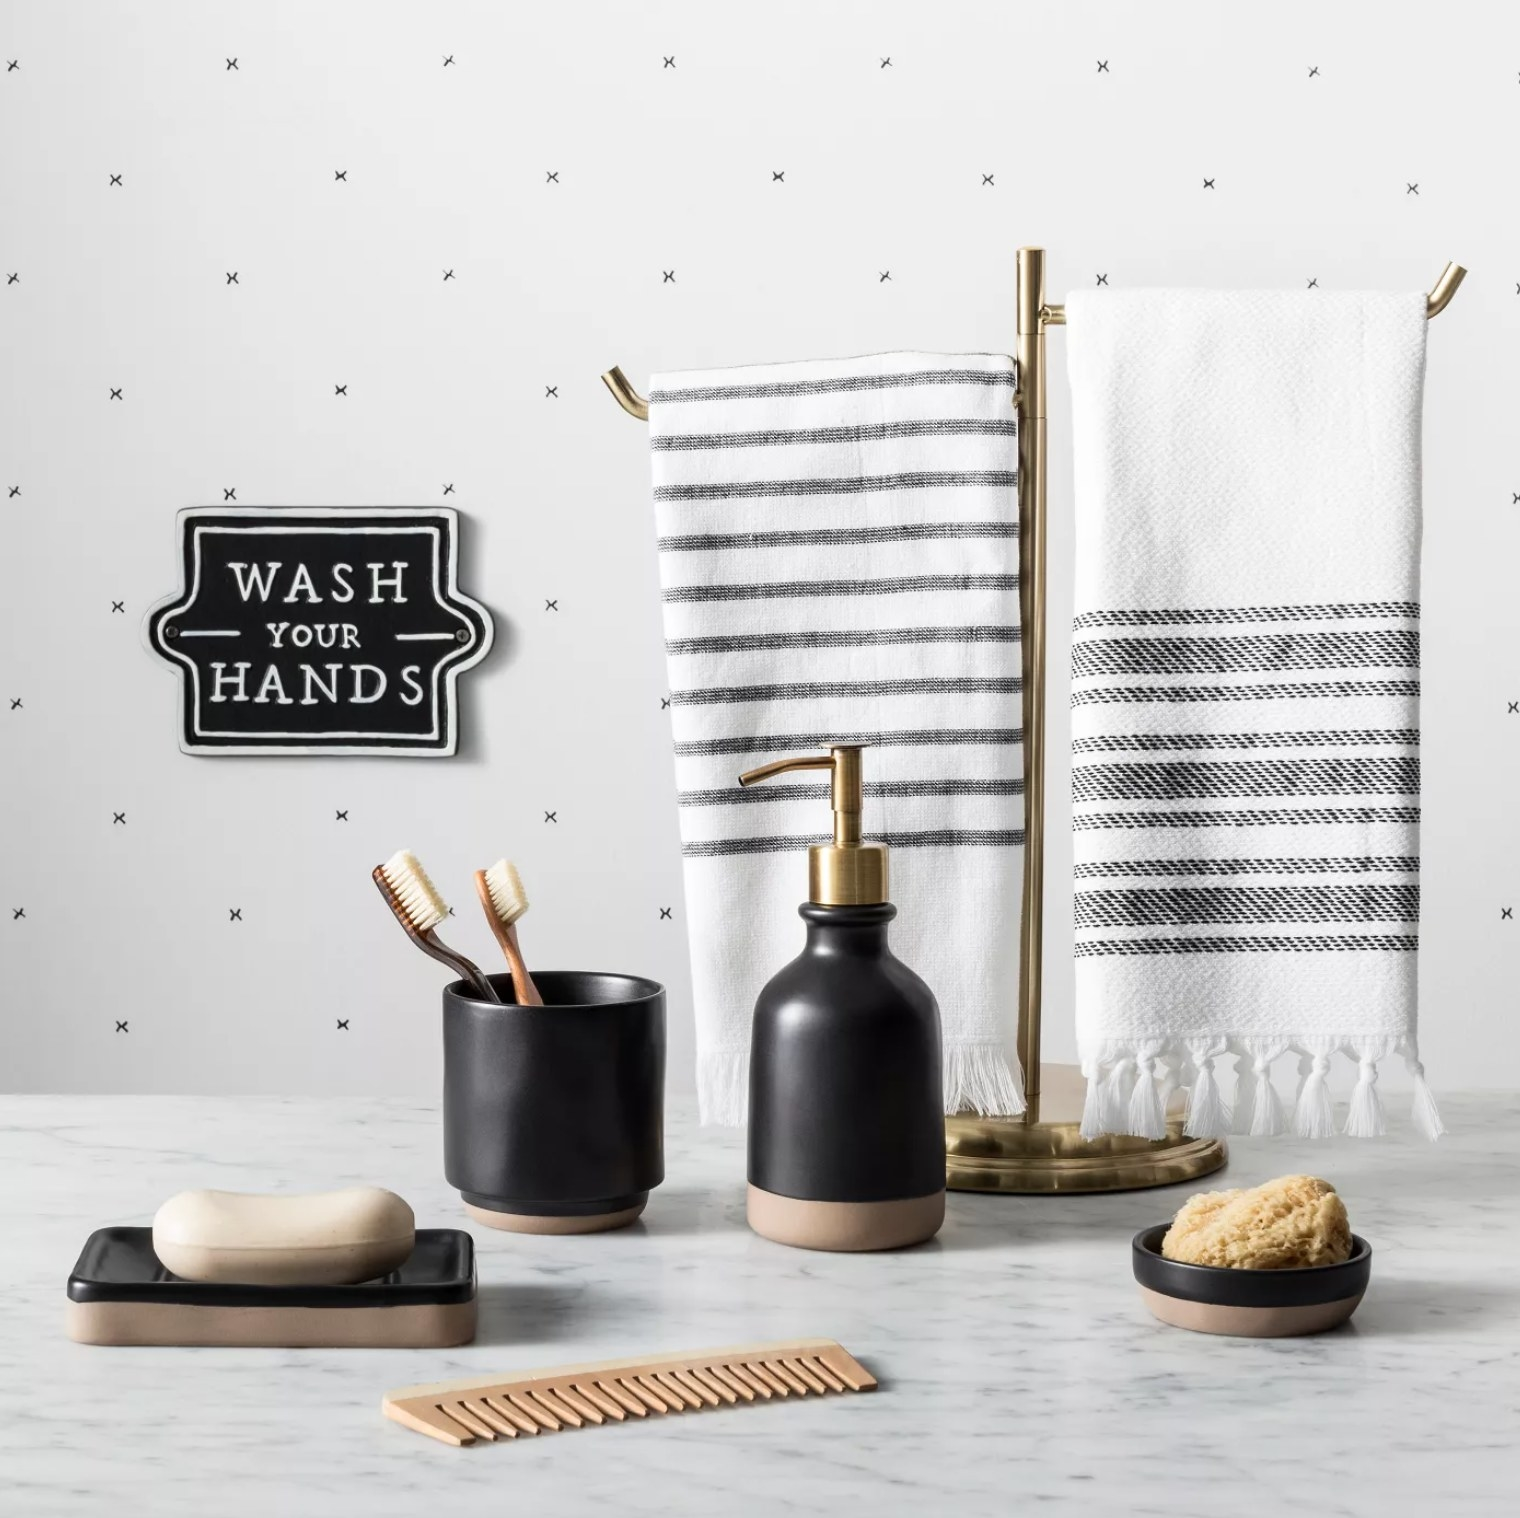 the black and white sign hanging on a wall next to towels and other bathroom accessories